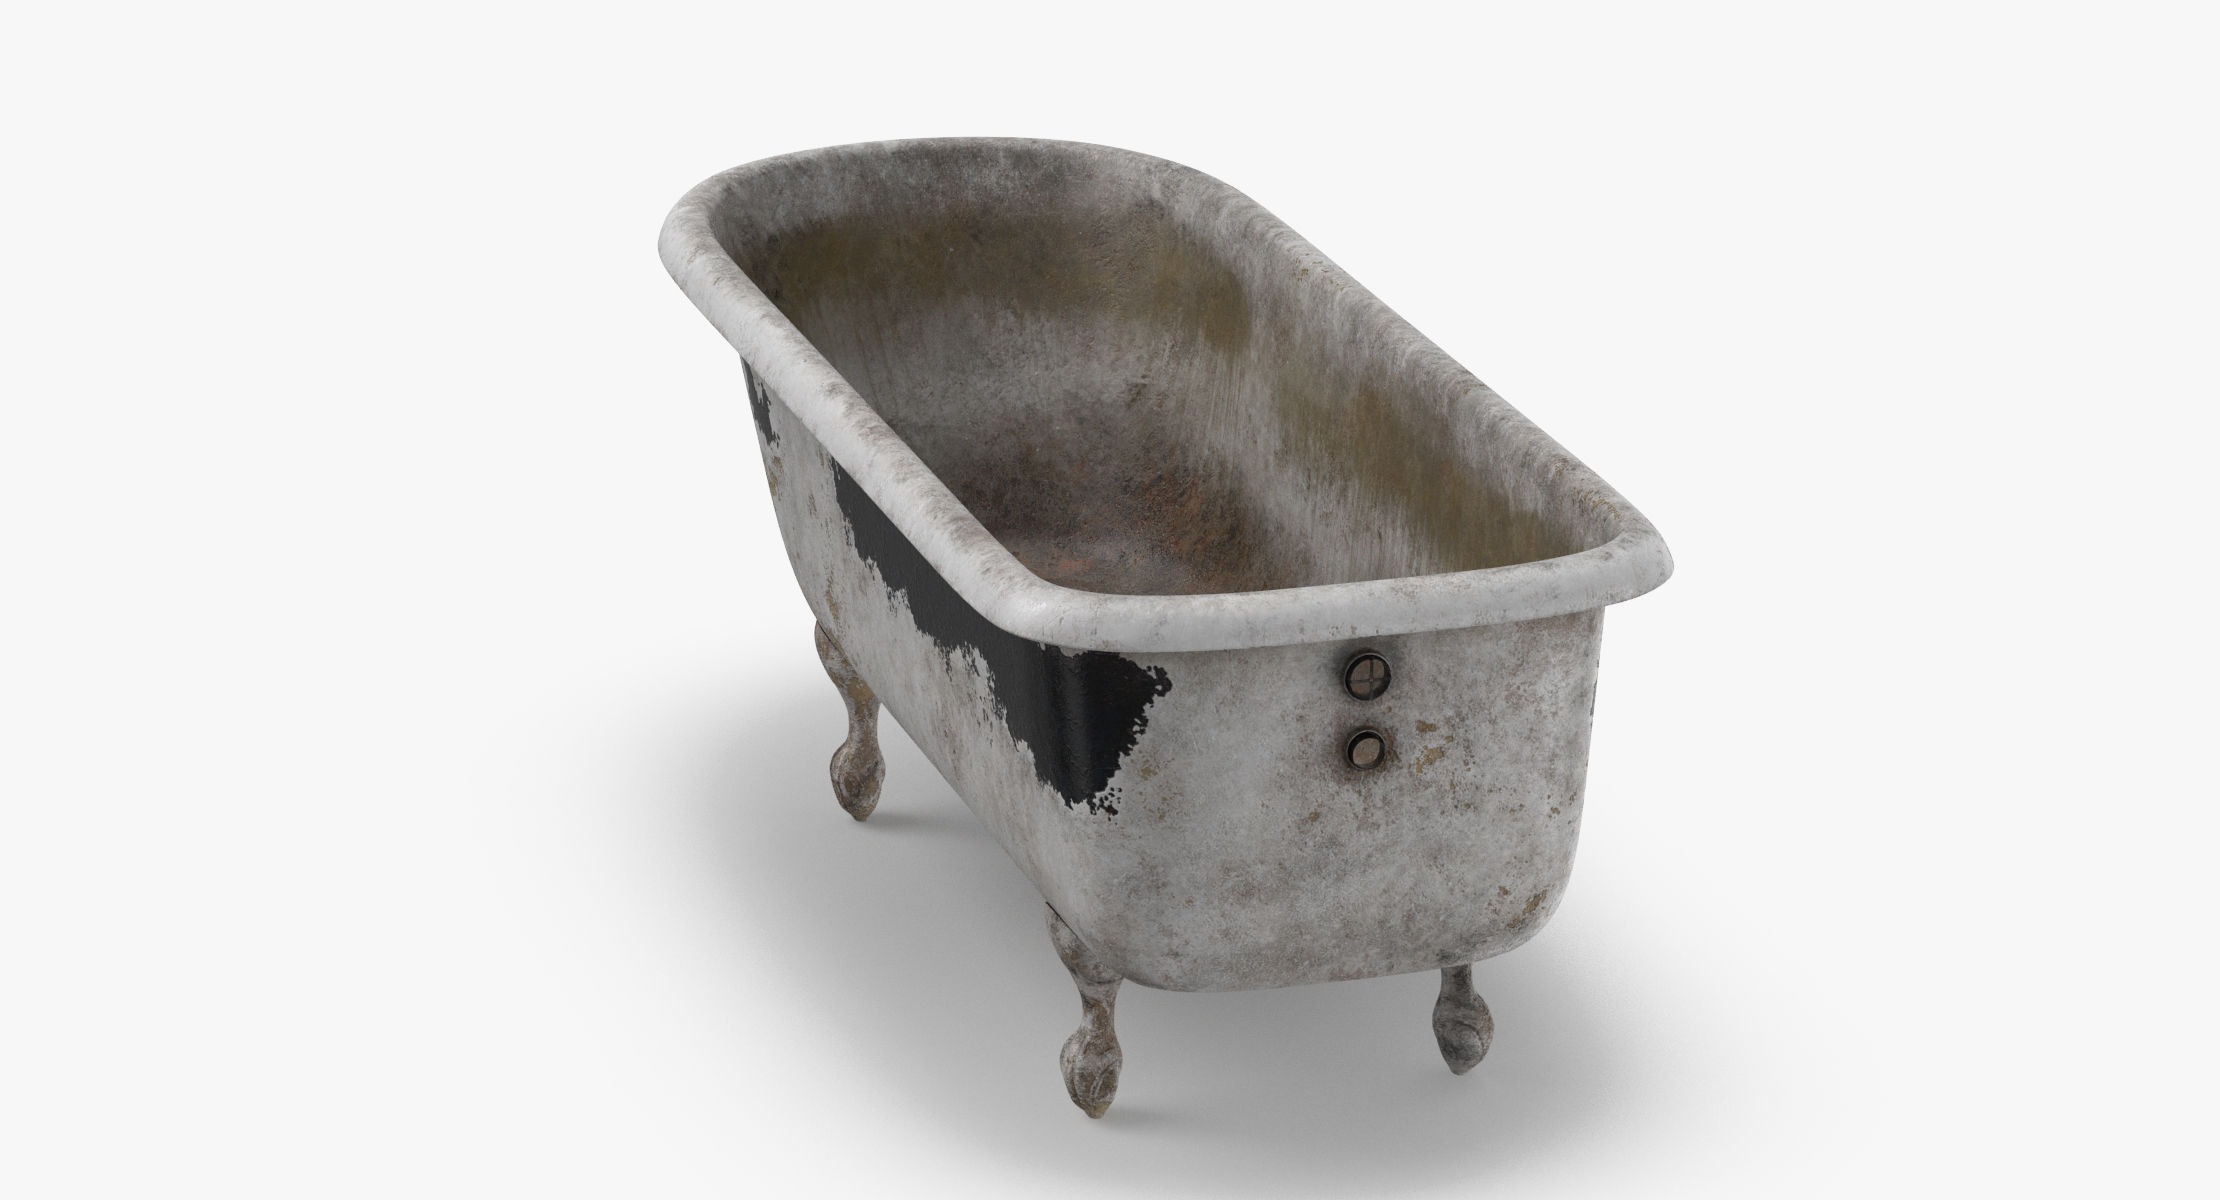 Dirty Asylum Bathtub - reel 1